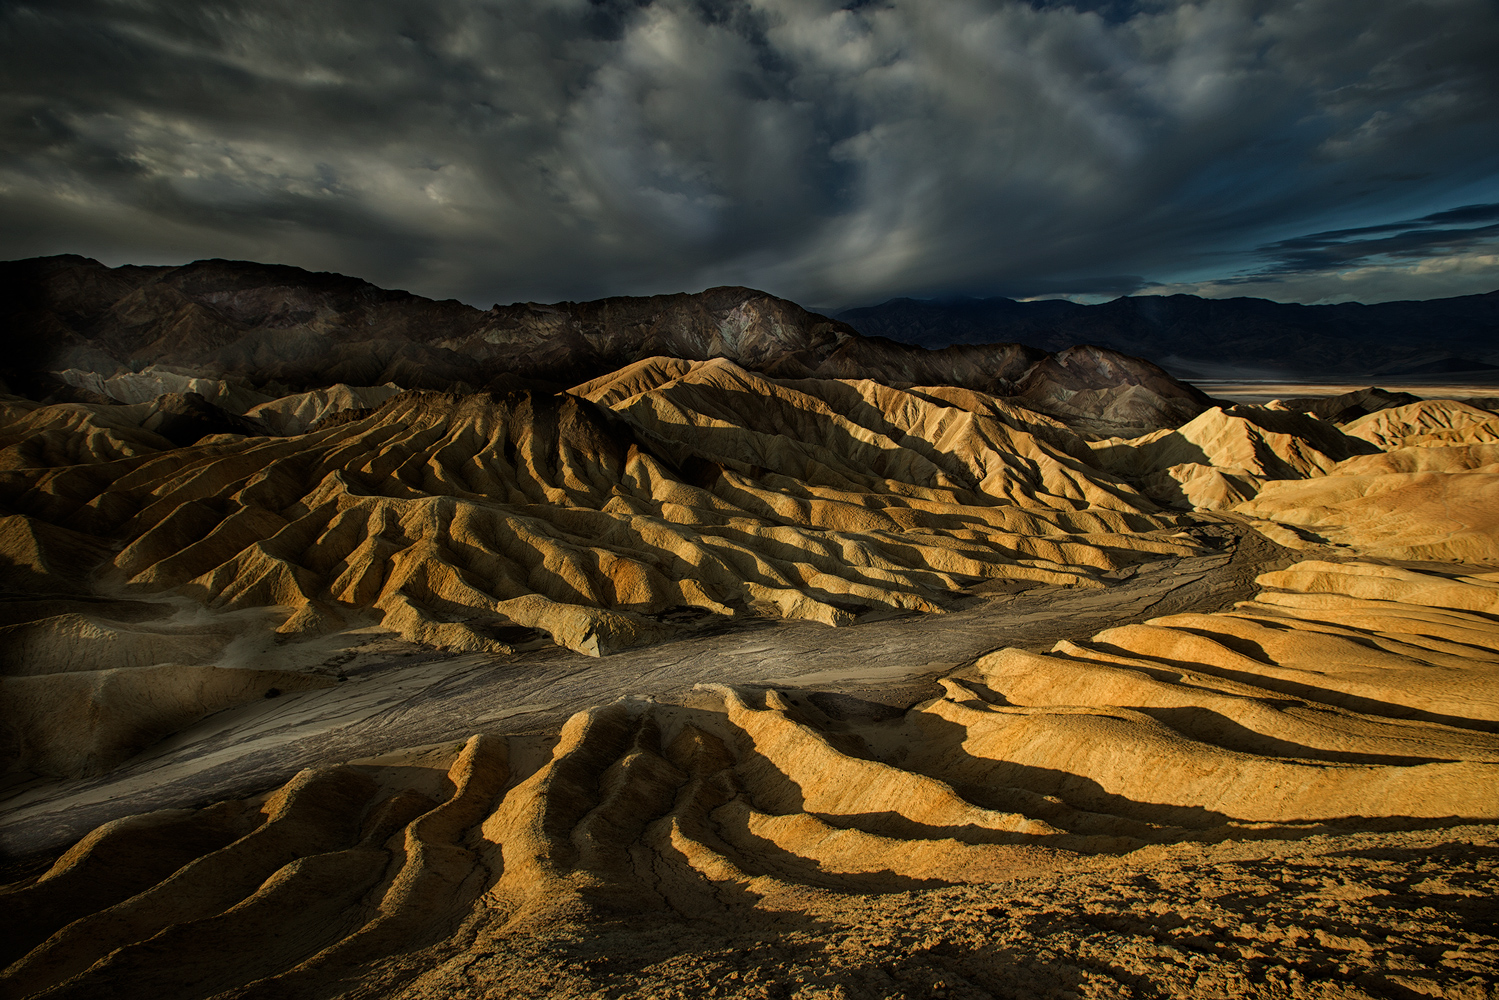 Zabriskie Point Badlands - Early morning at Zabriskie Point in itself is a master class in light, pattern and texture.